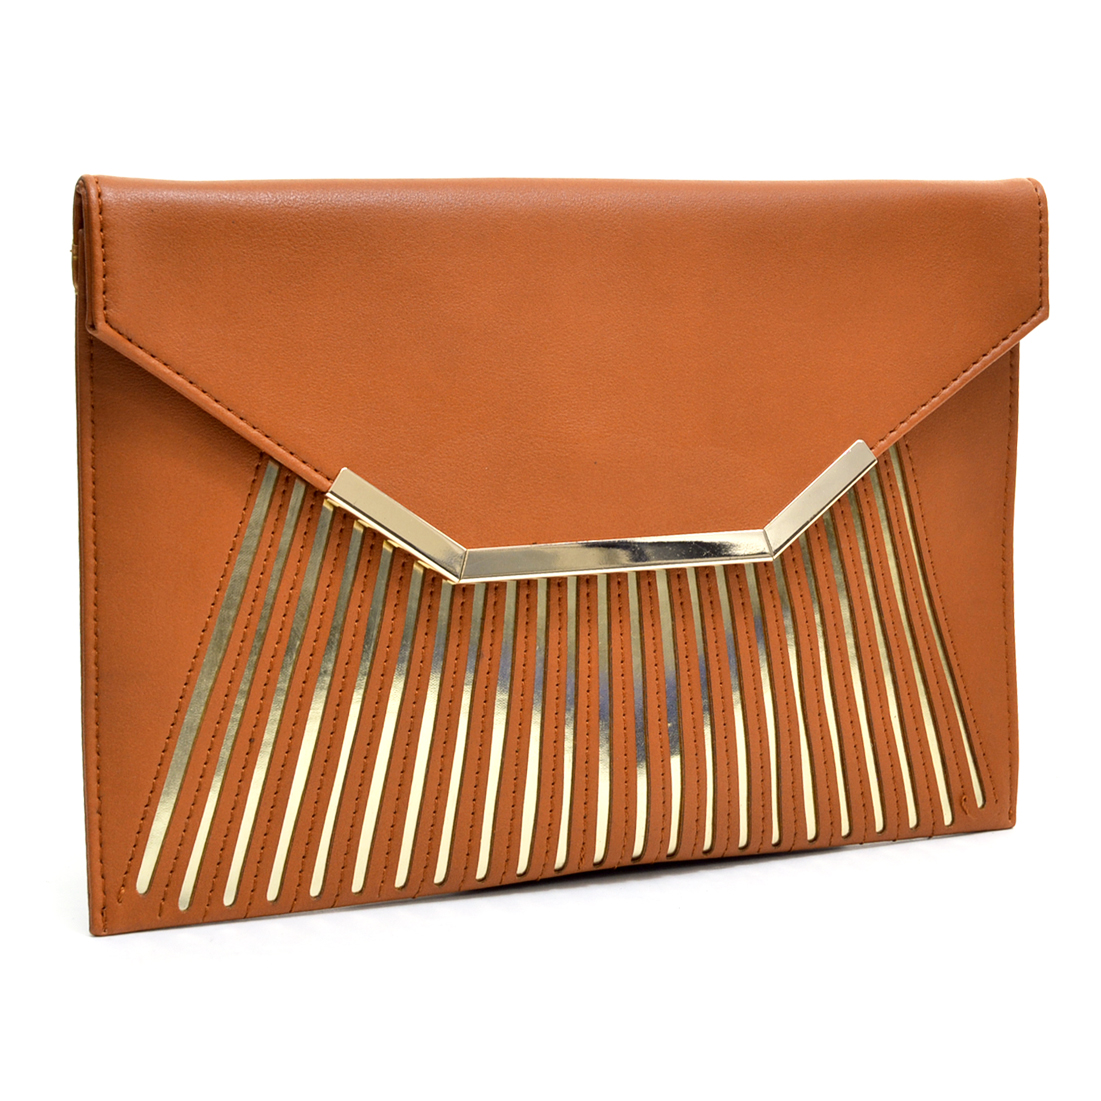 Matte Fold Over Ultra Slim Clutch w/Removable Shoulder Strap